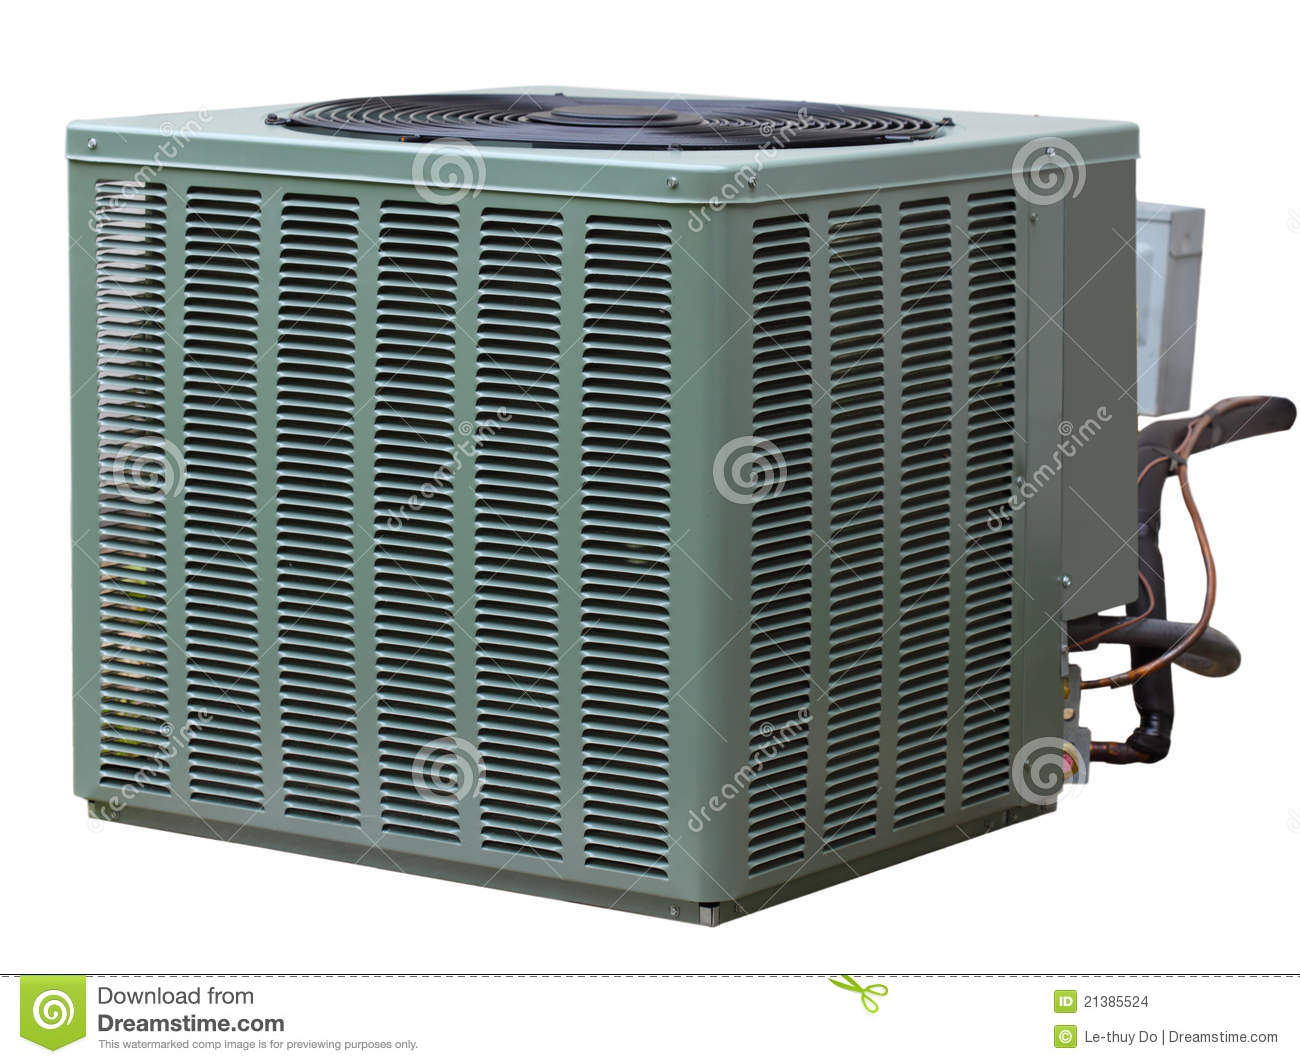 Residential high efficiency central air conditioner outside unit. #83A328